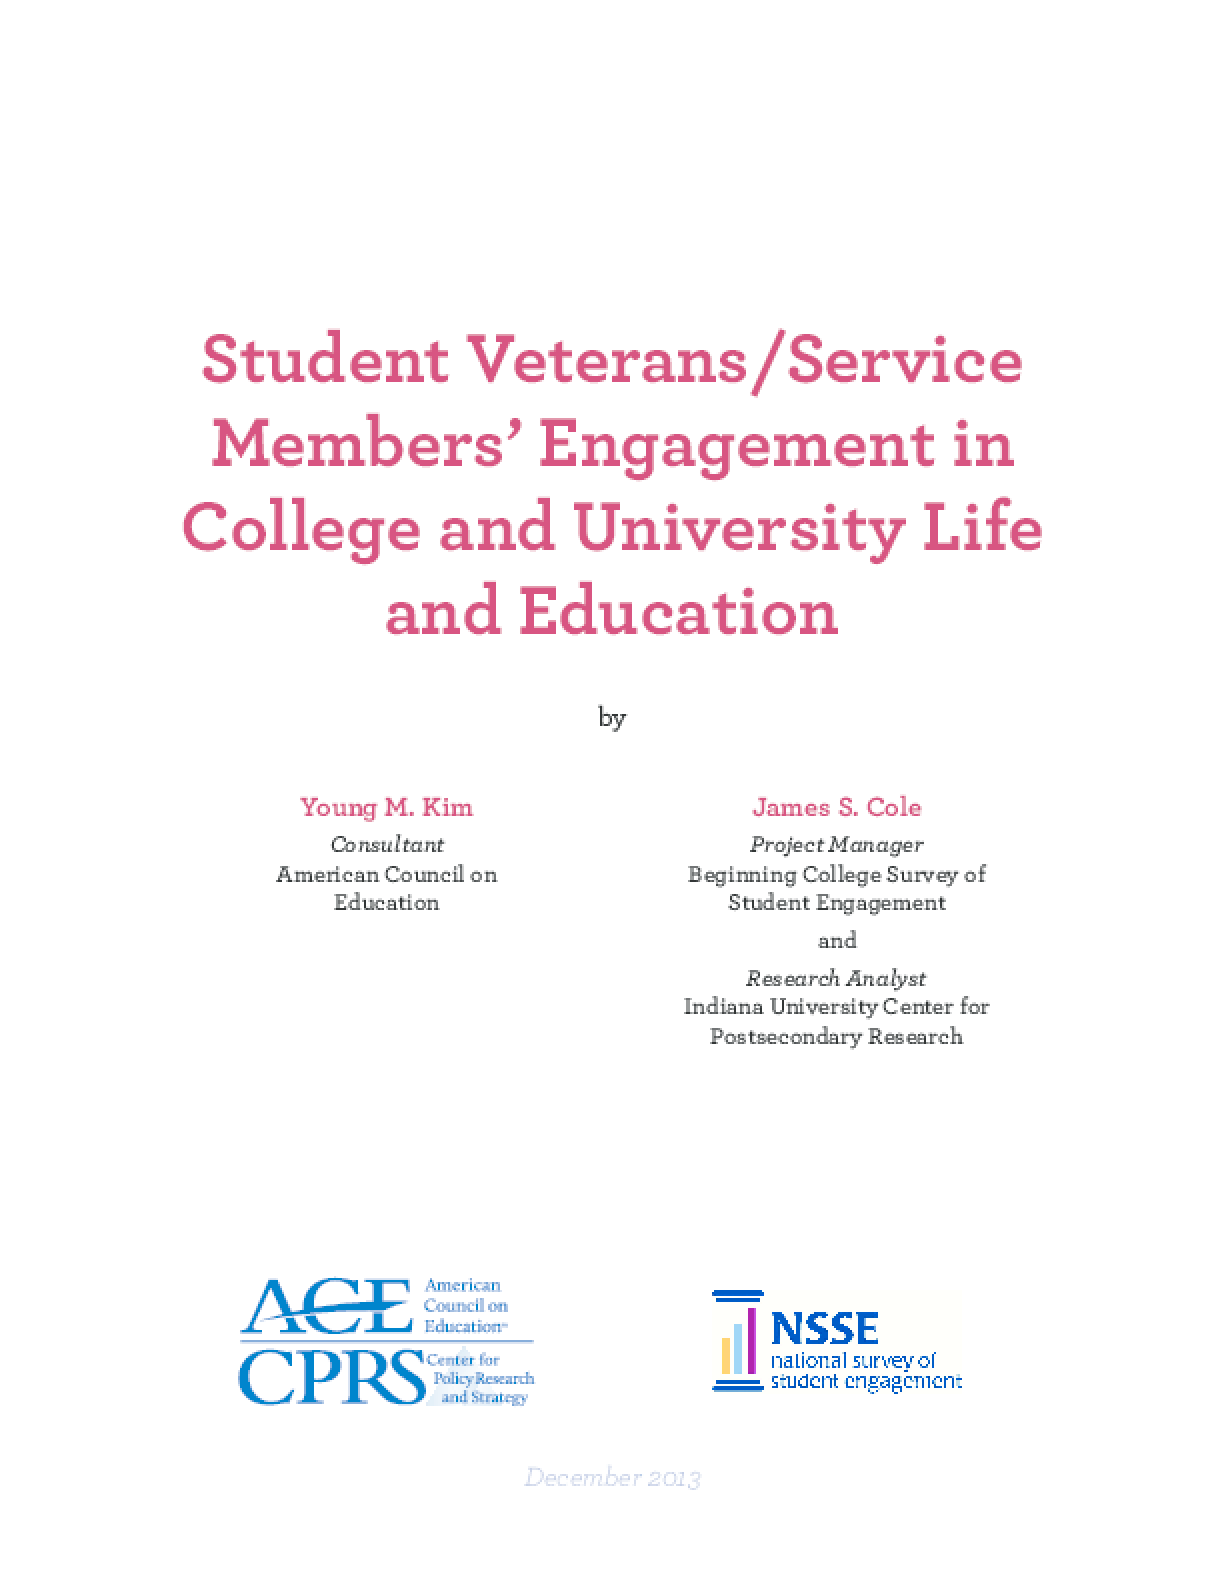 Student Veterans/Service Members' Engagement in College and University Life and Education